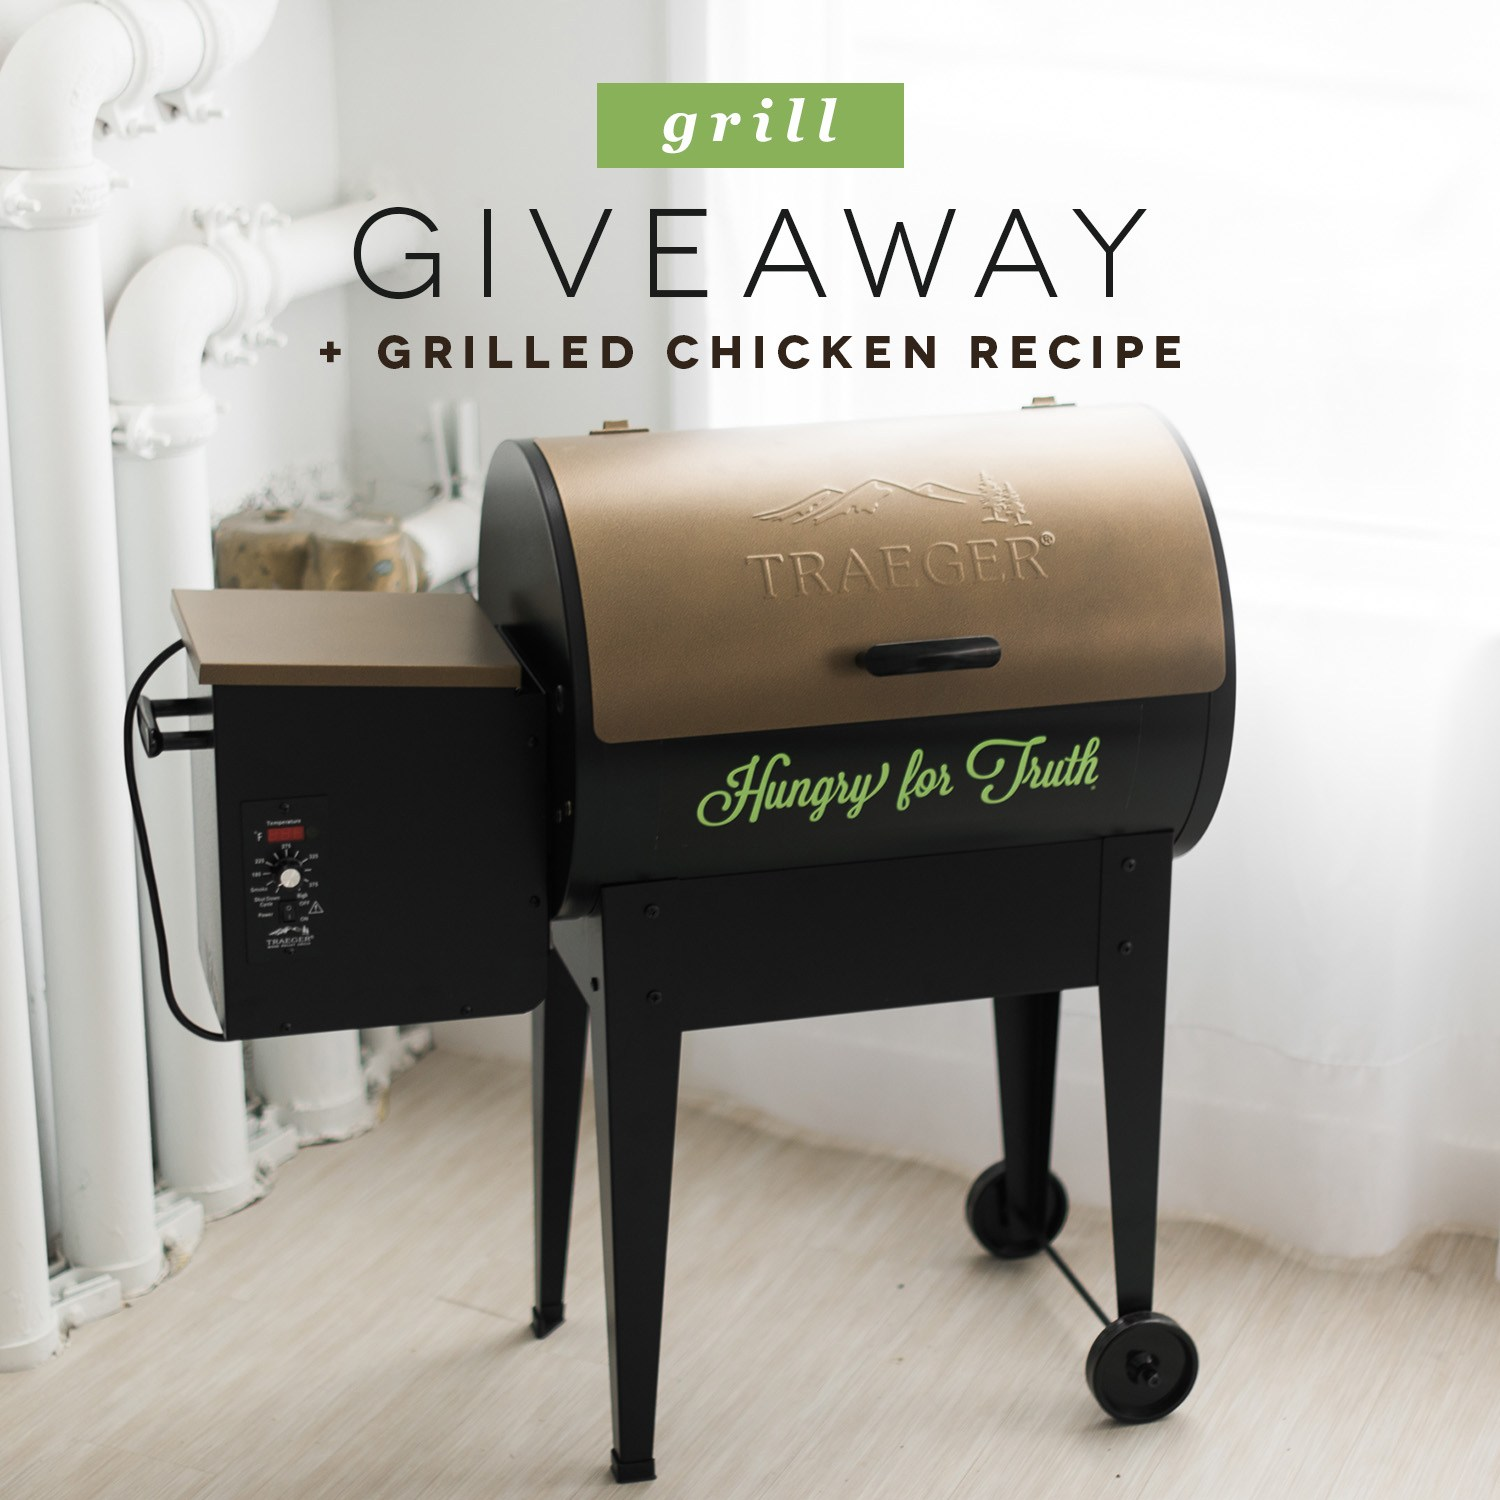 Hungry for Truth Trager Grill Giveaway